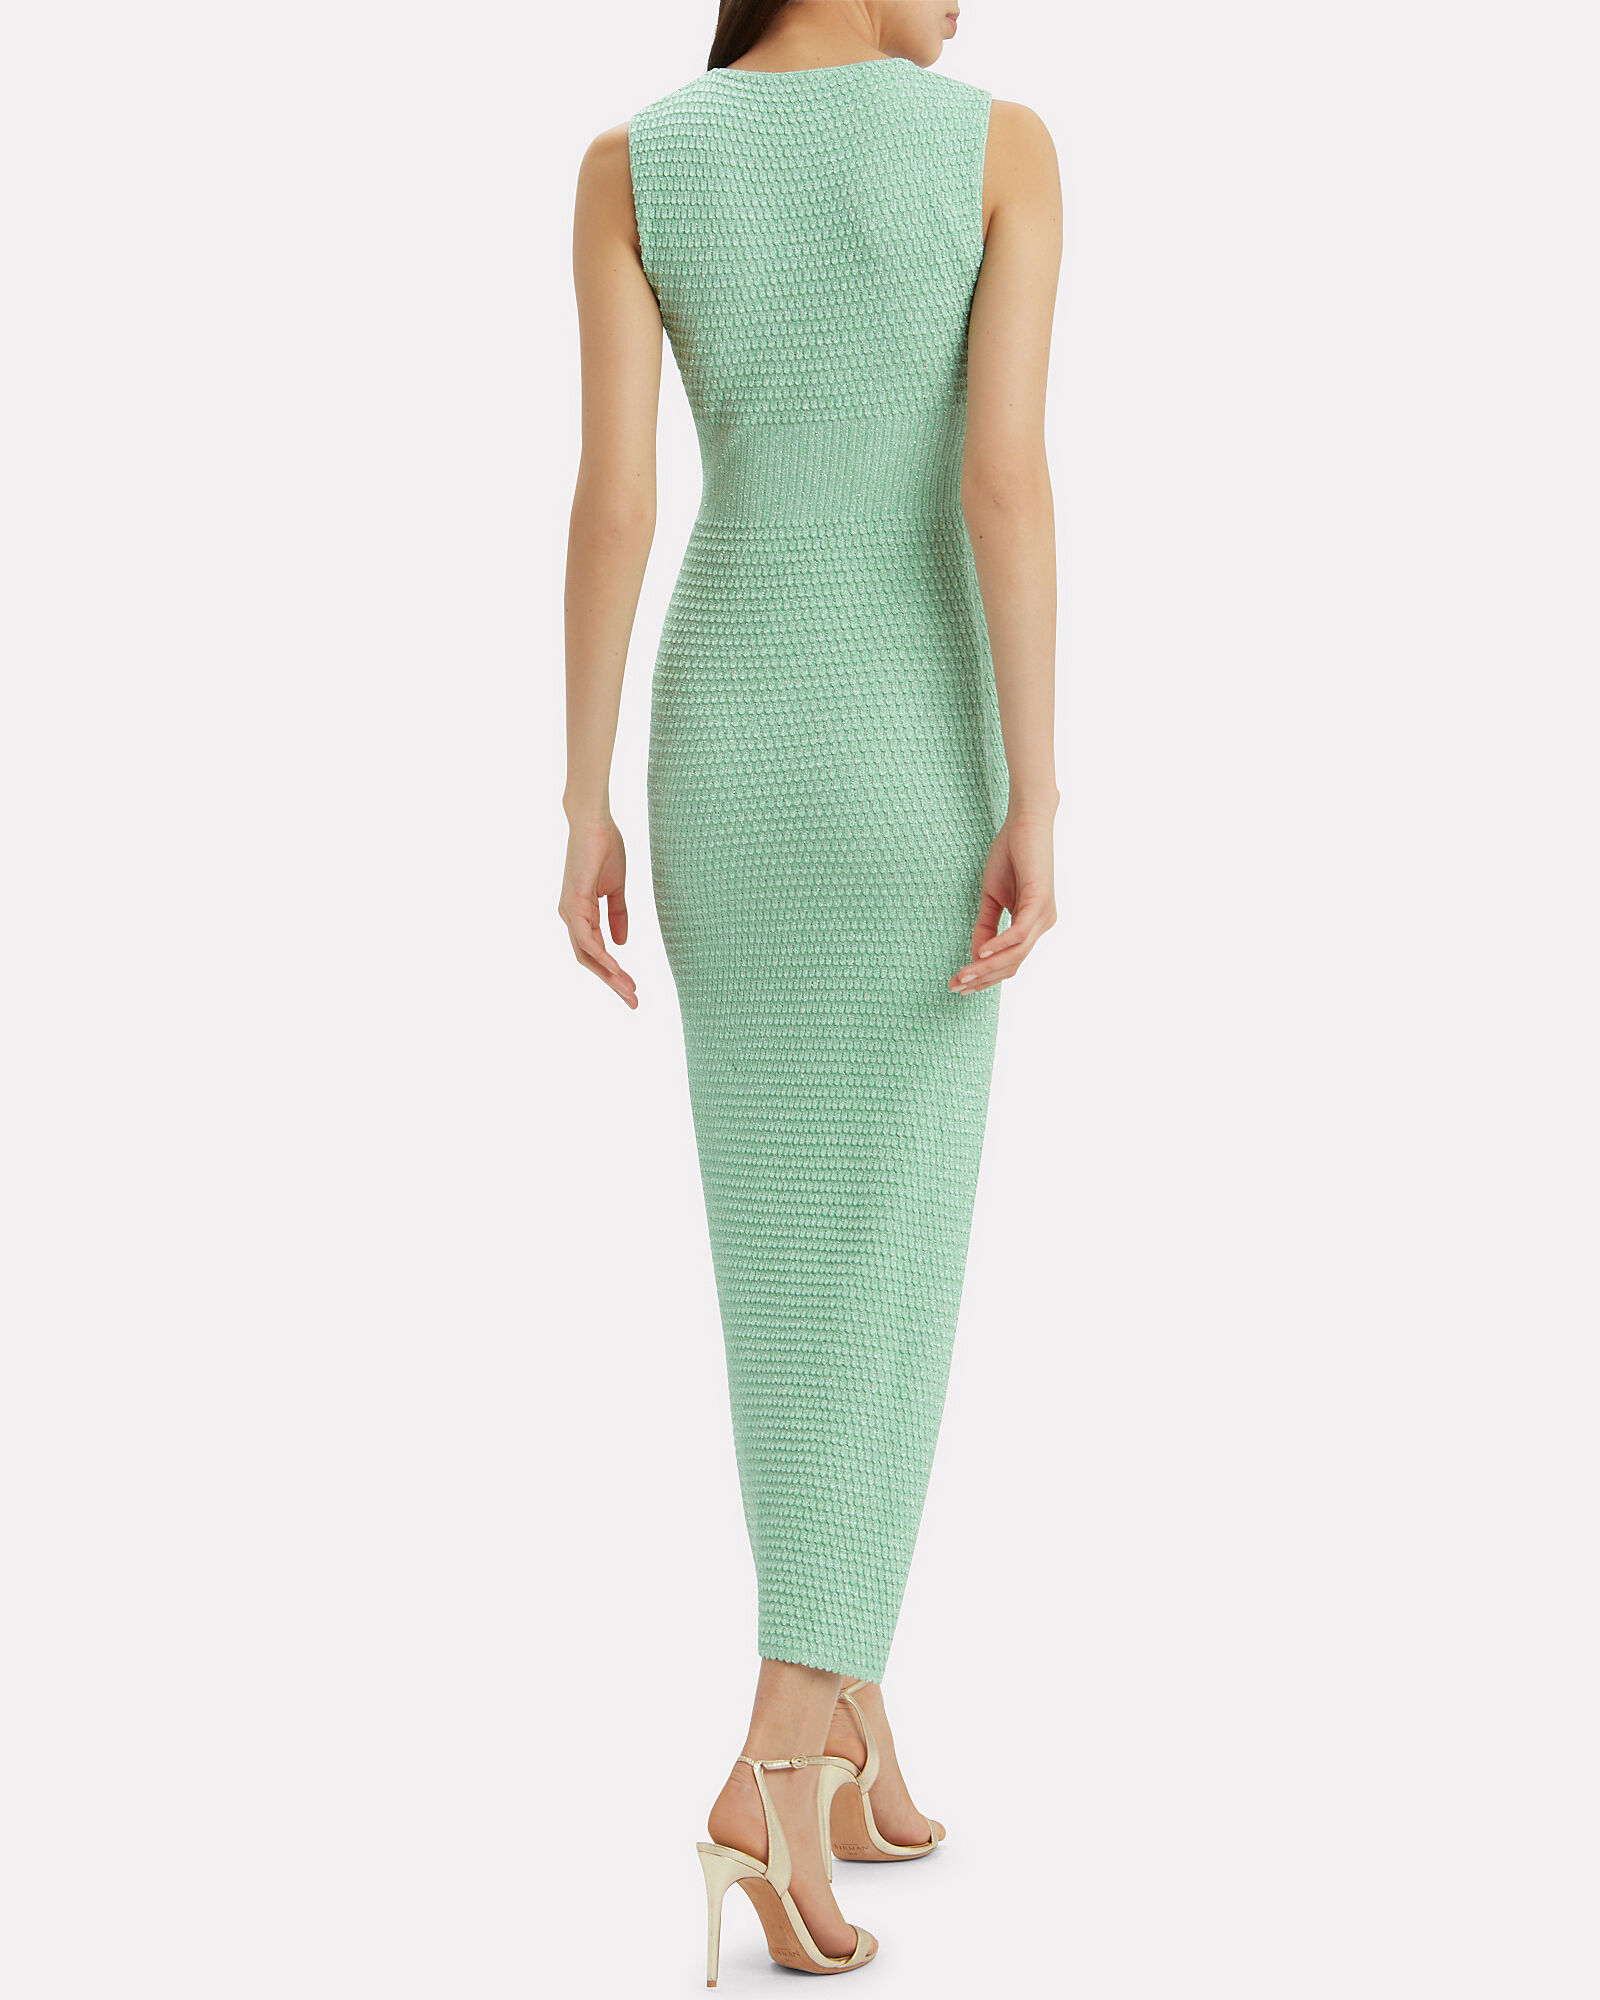 Seafoam Stretch Jersey Dress, GREEN-LT, hi-res